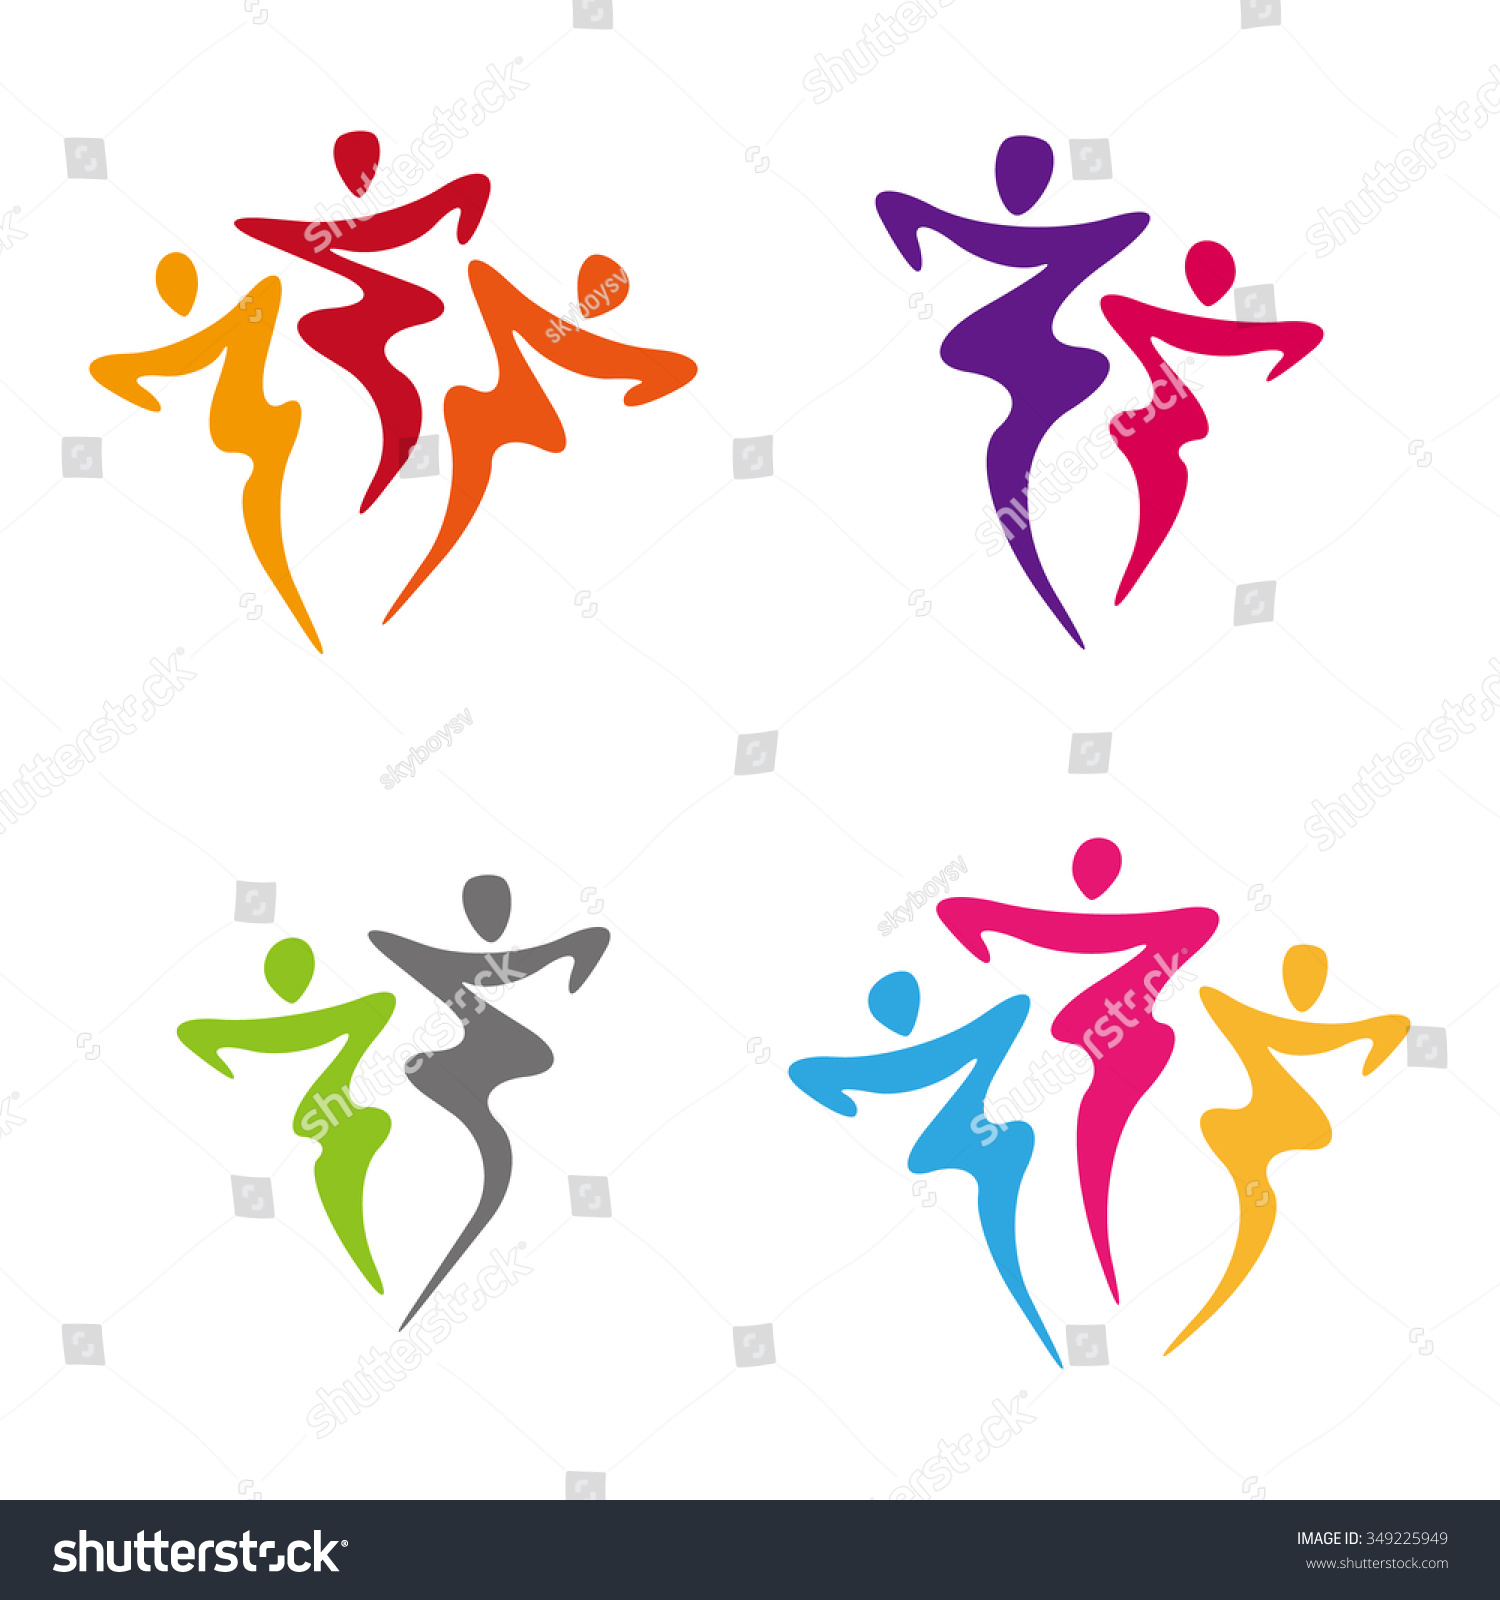 Dancers illustration dancing people logo set stock vector for Abstract salon of the arts